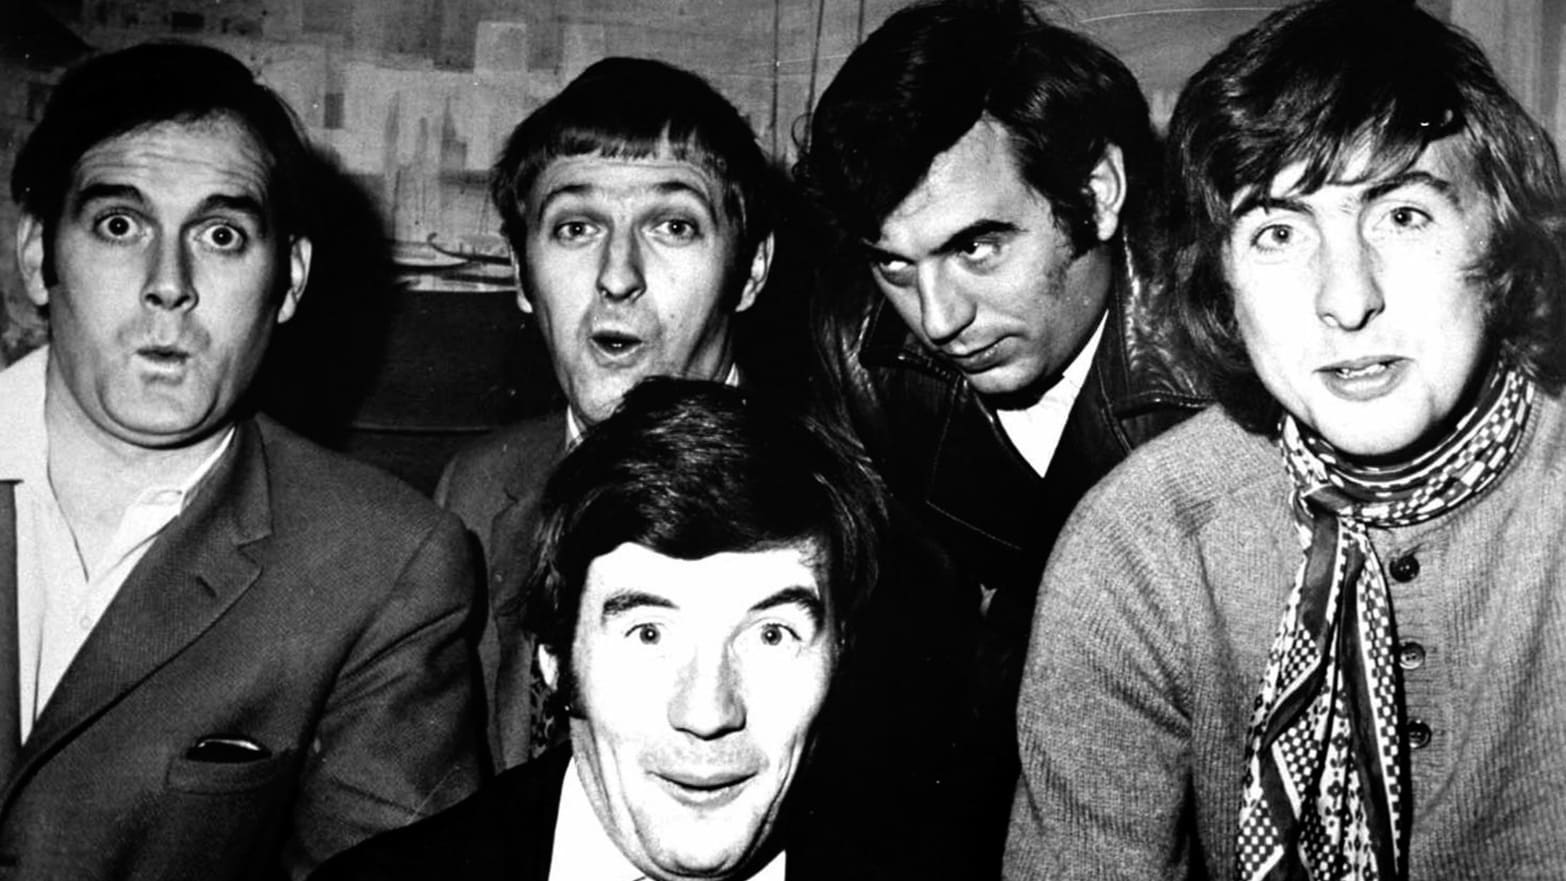 The Birth of 'Monty Python's Flying Circus,' the Weird Little British Show That Took Over the World